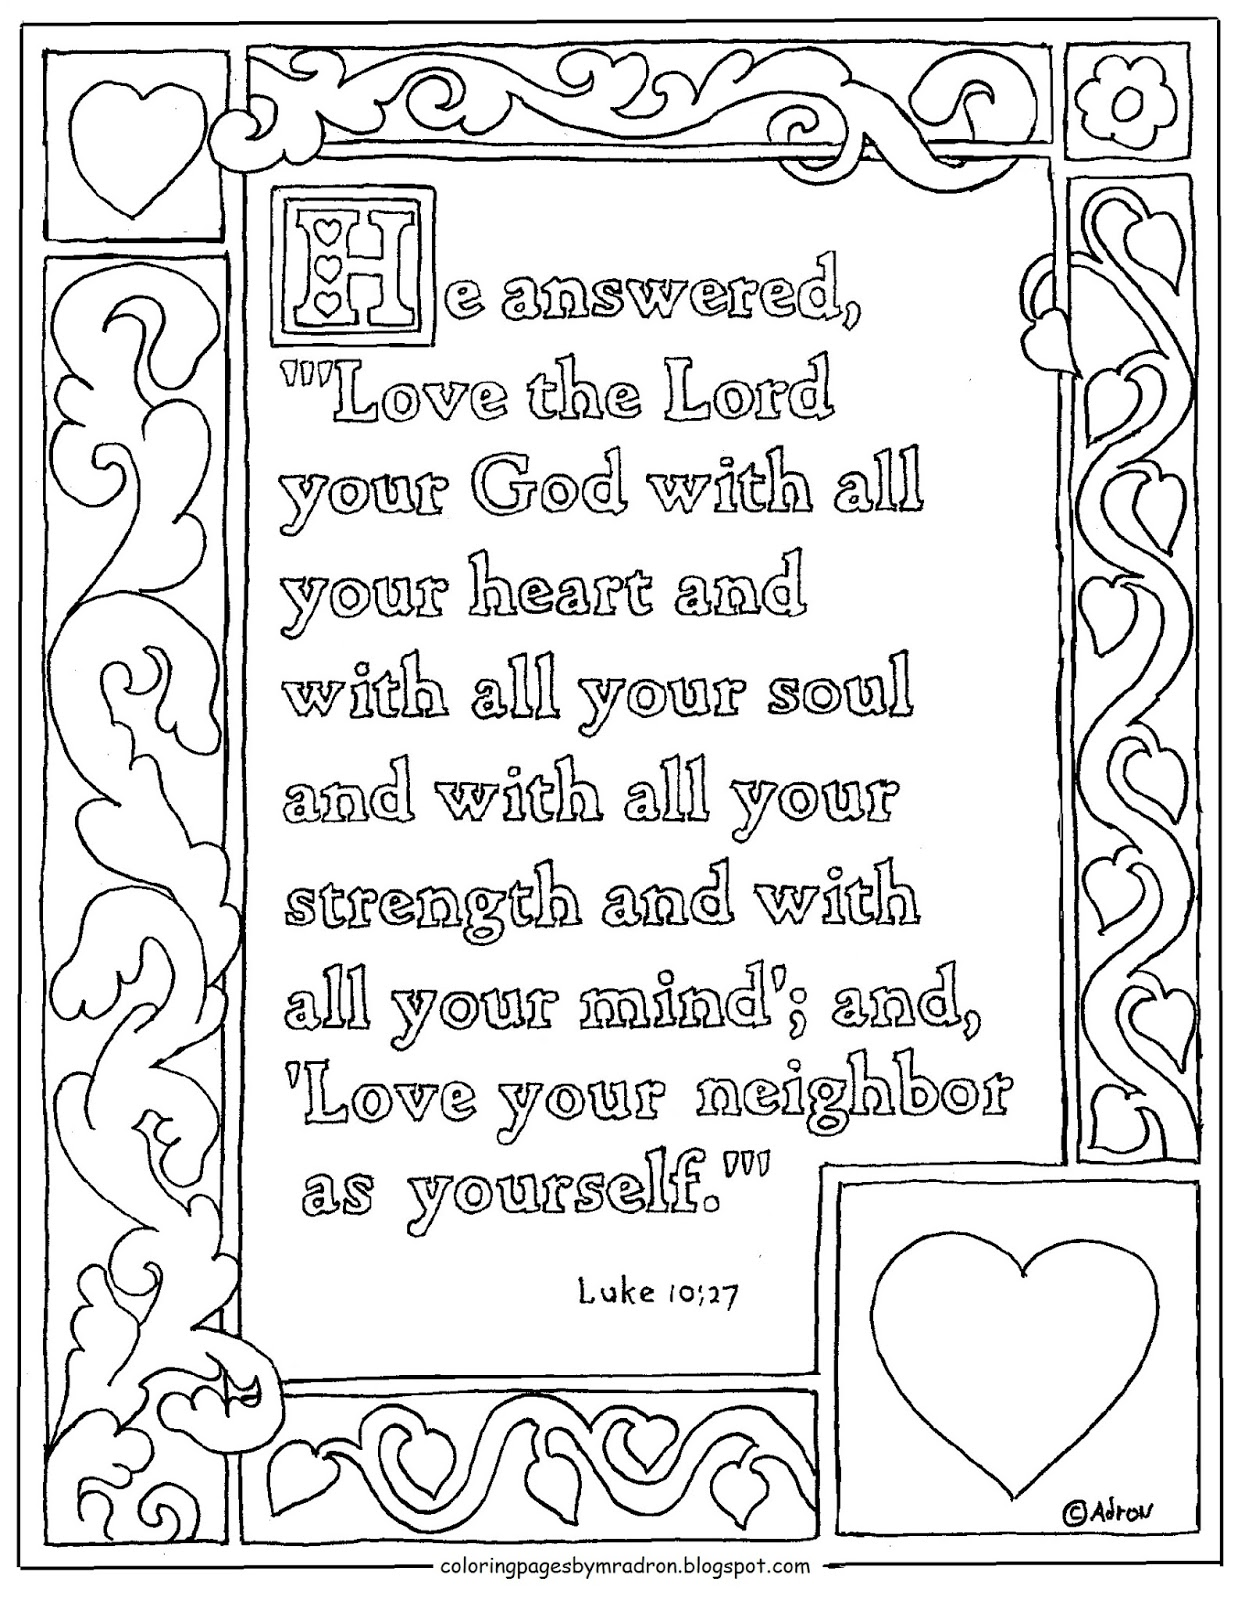 Coloring Pages For Kids By Mr Adron Luke 10 27 Printable Coloring Page Love God With All Your